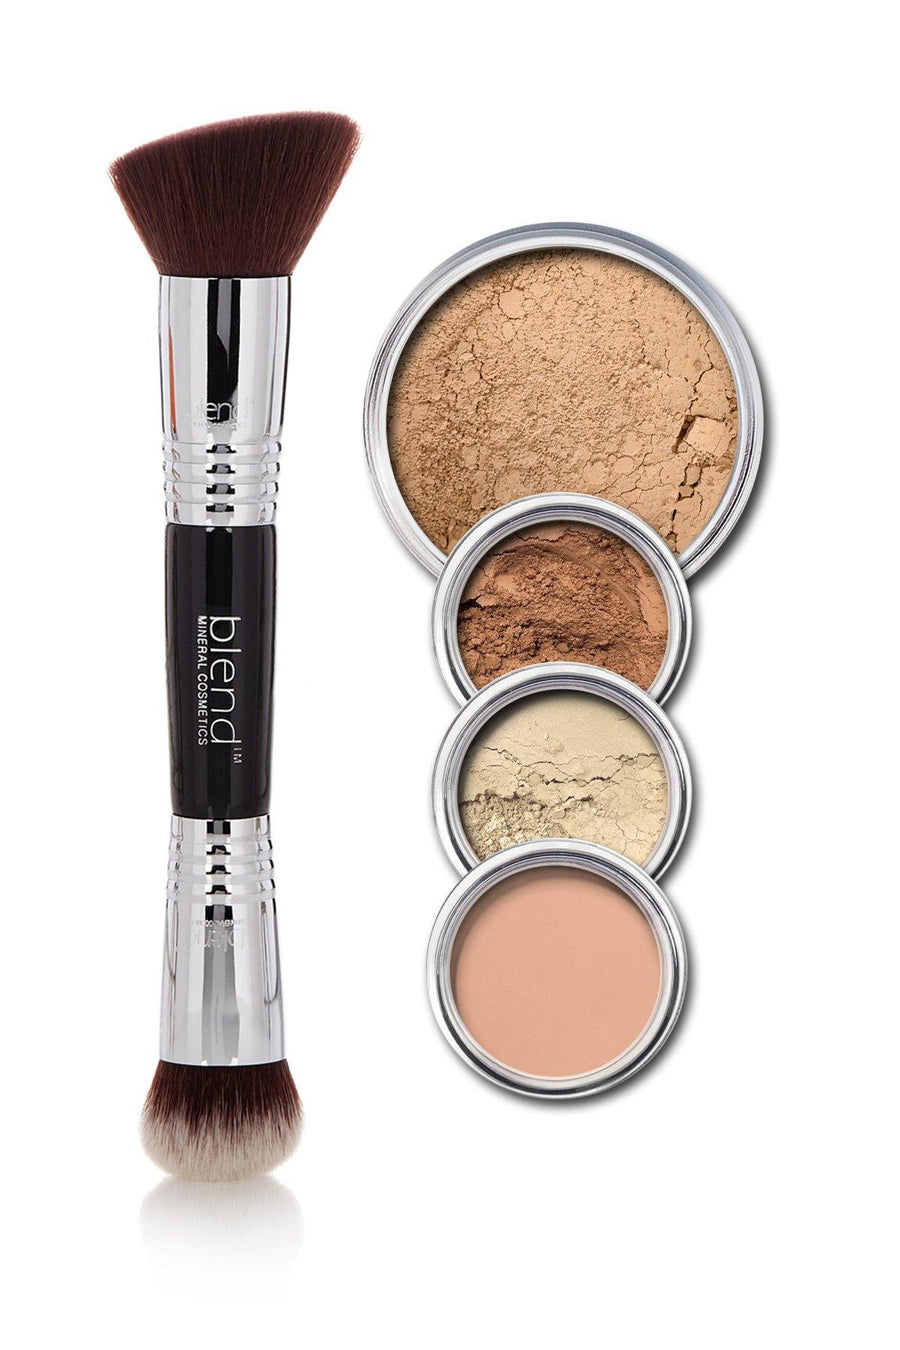 All-Over Face Contour & Highlighting Kit - Medium Dark - Blend Mineral Cosmetics